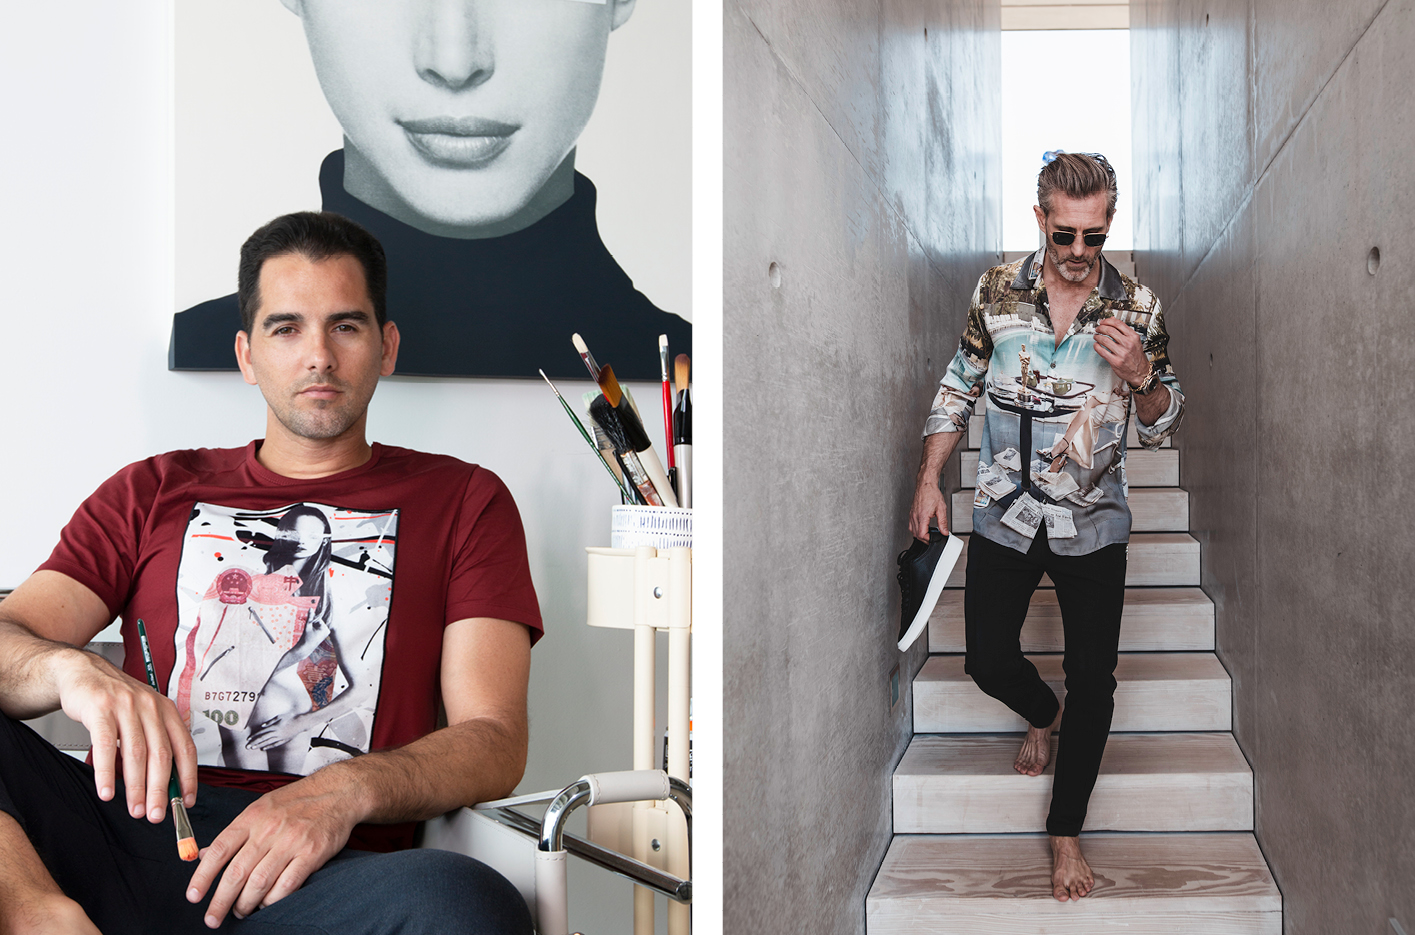 Left, Javiar Martin wearing one of the t-shirts he has produces with Limitato. Right, a Limitato Terry O'Neill shirt featuring the photograph of Faye Dunaway taken the morning after she won an Oscar for her performance in Network